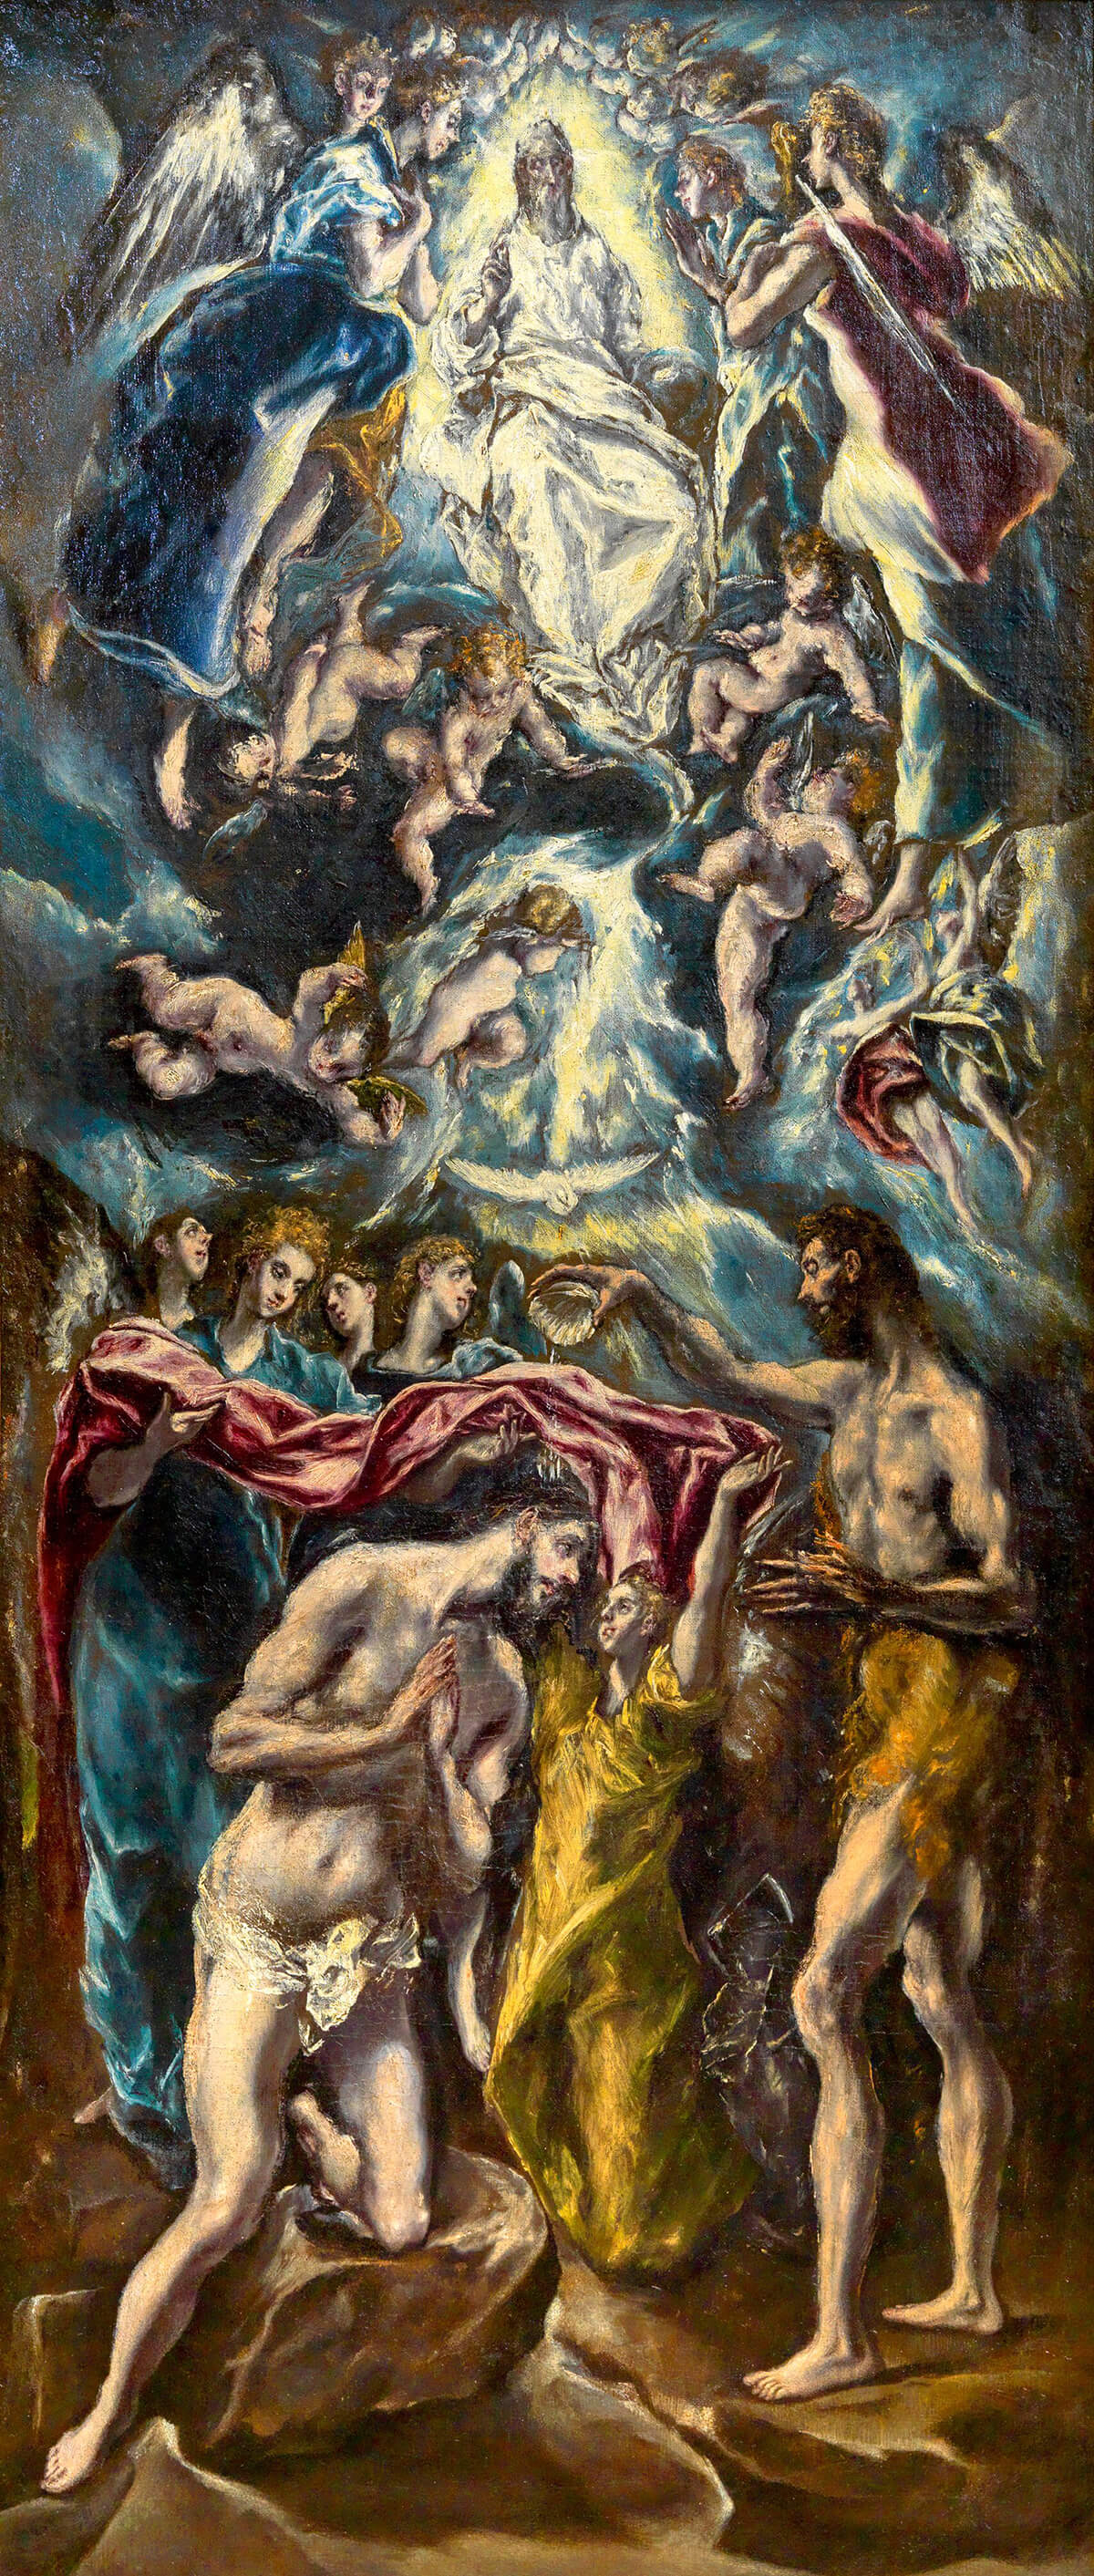 El Greco in Italy. Metamorphosis of a Genius